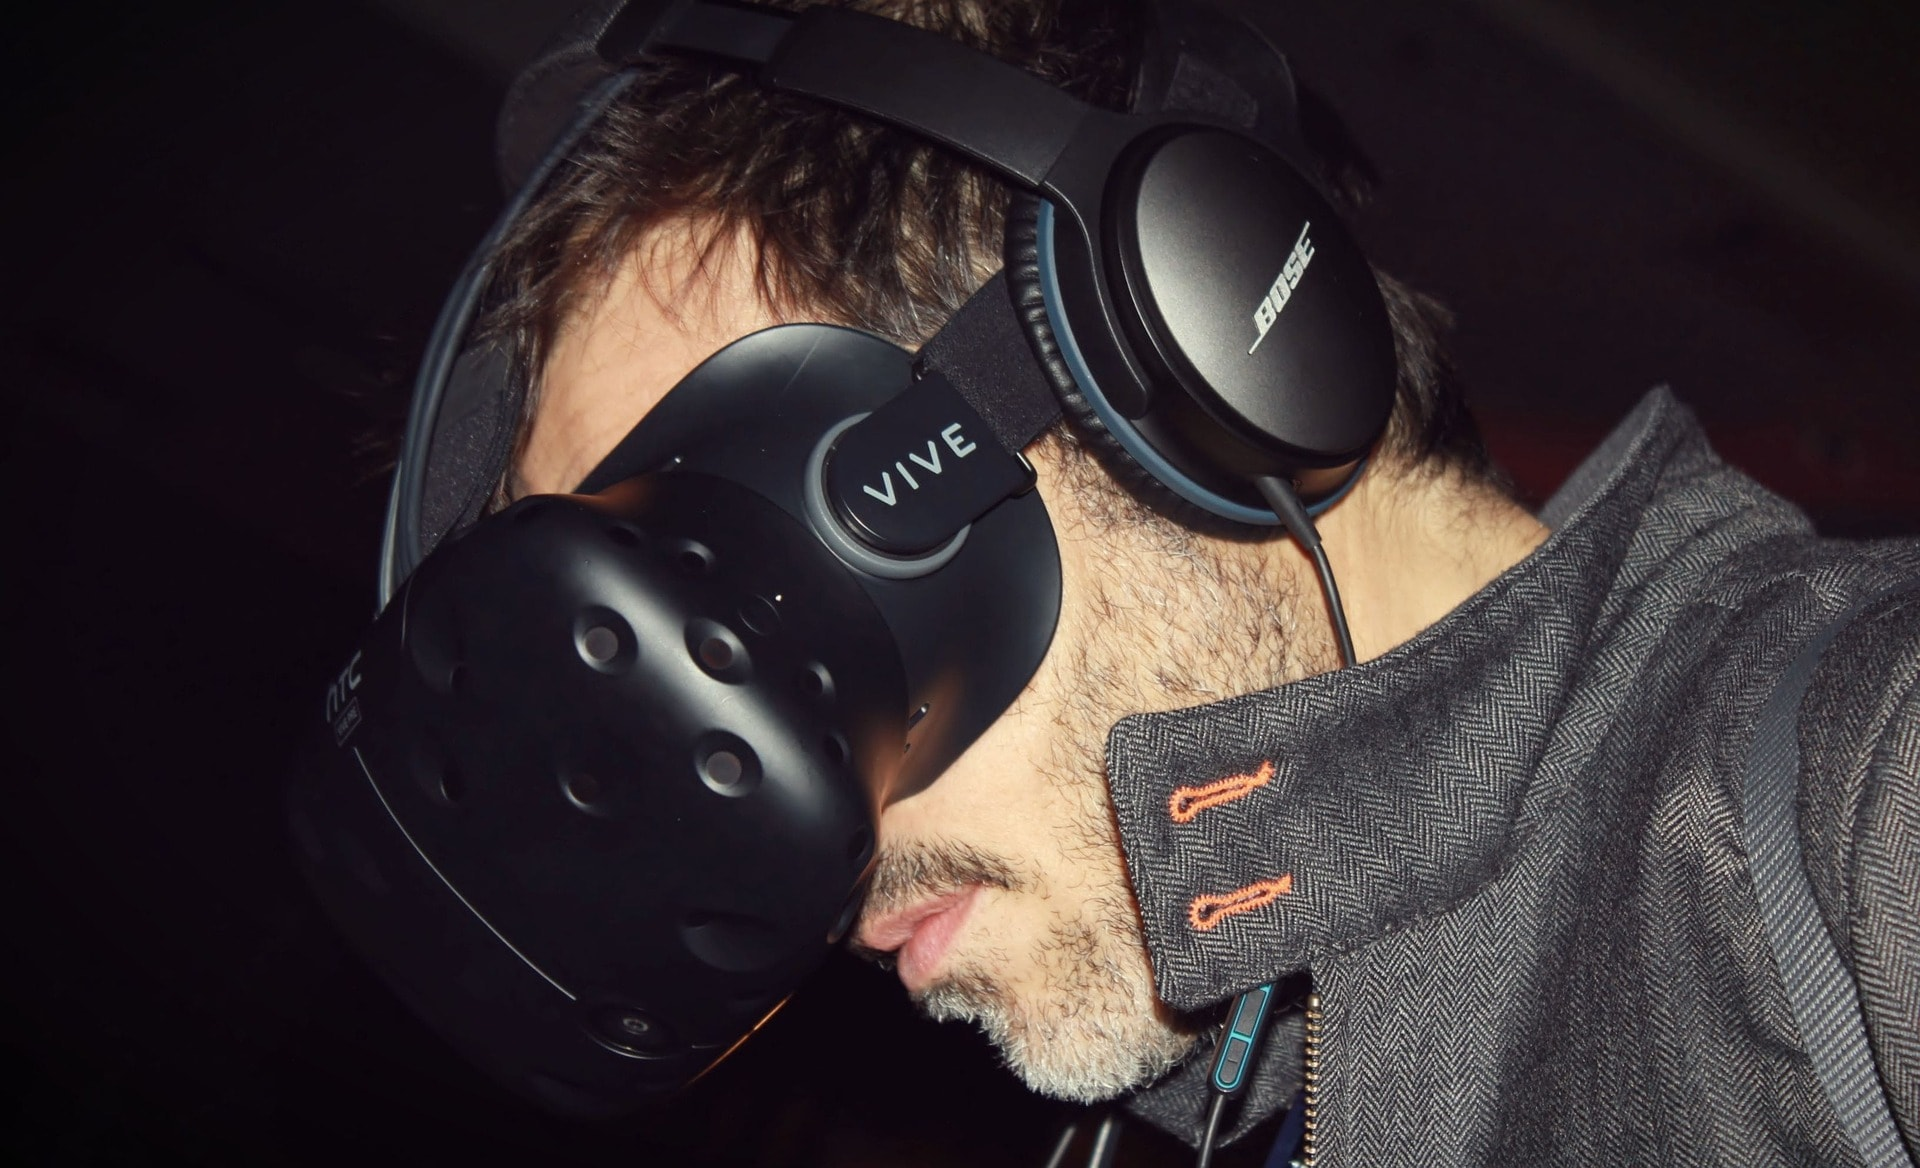 Best VR Headsets under 50 [Top 3 Guide]